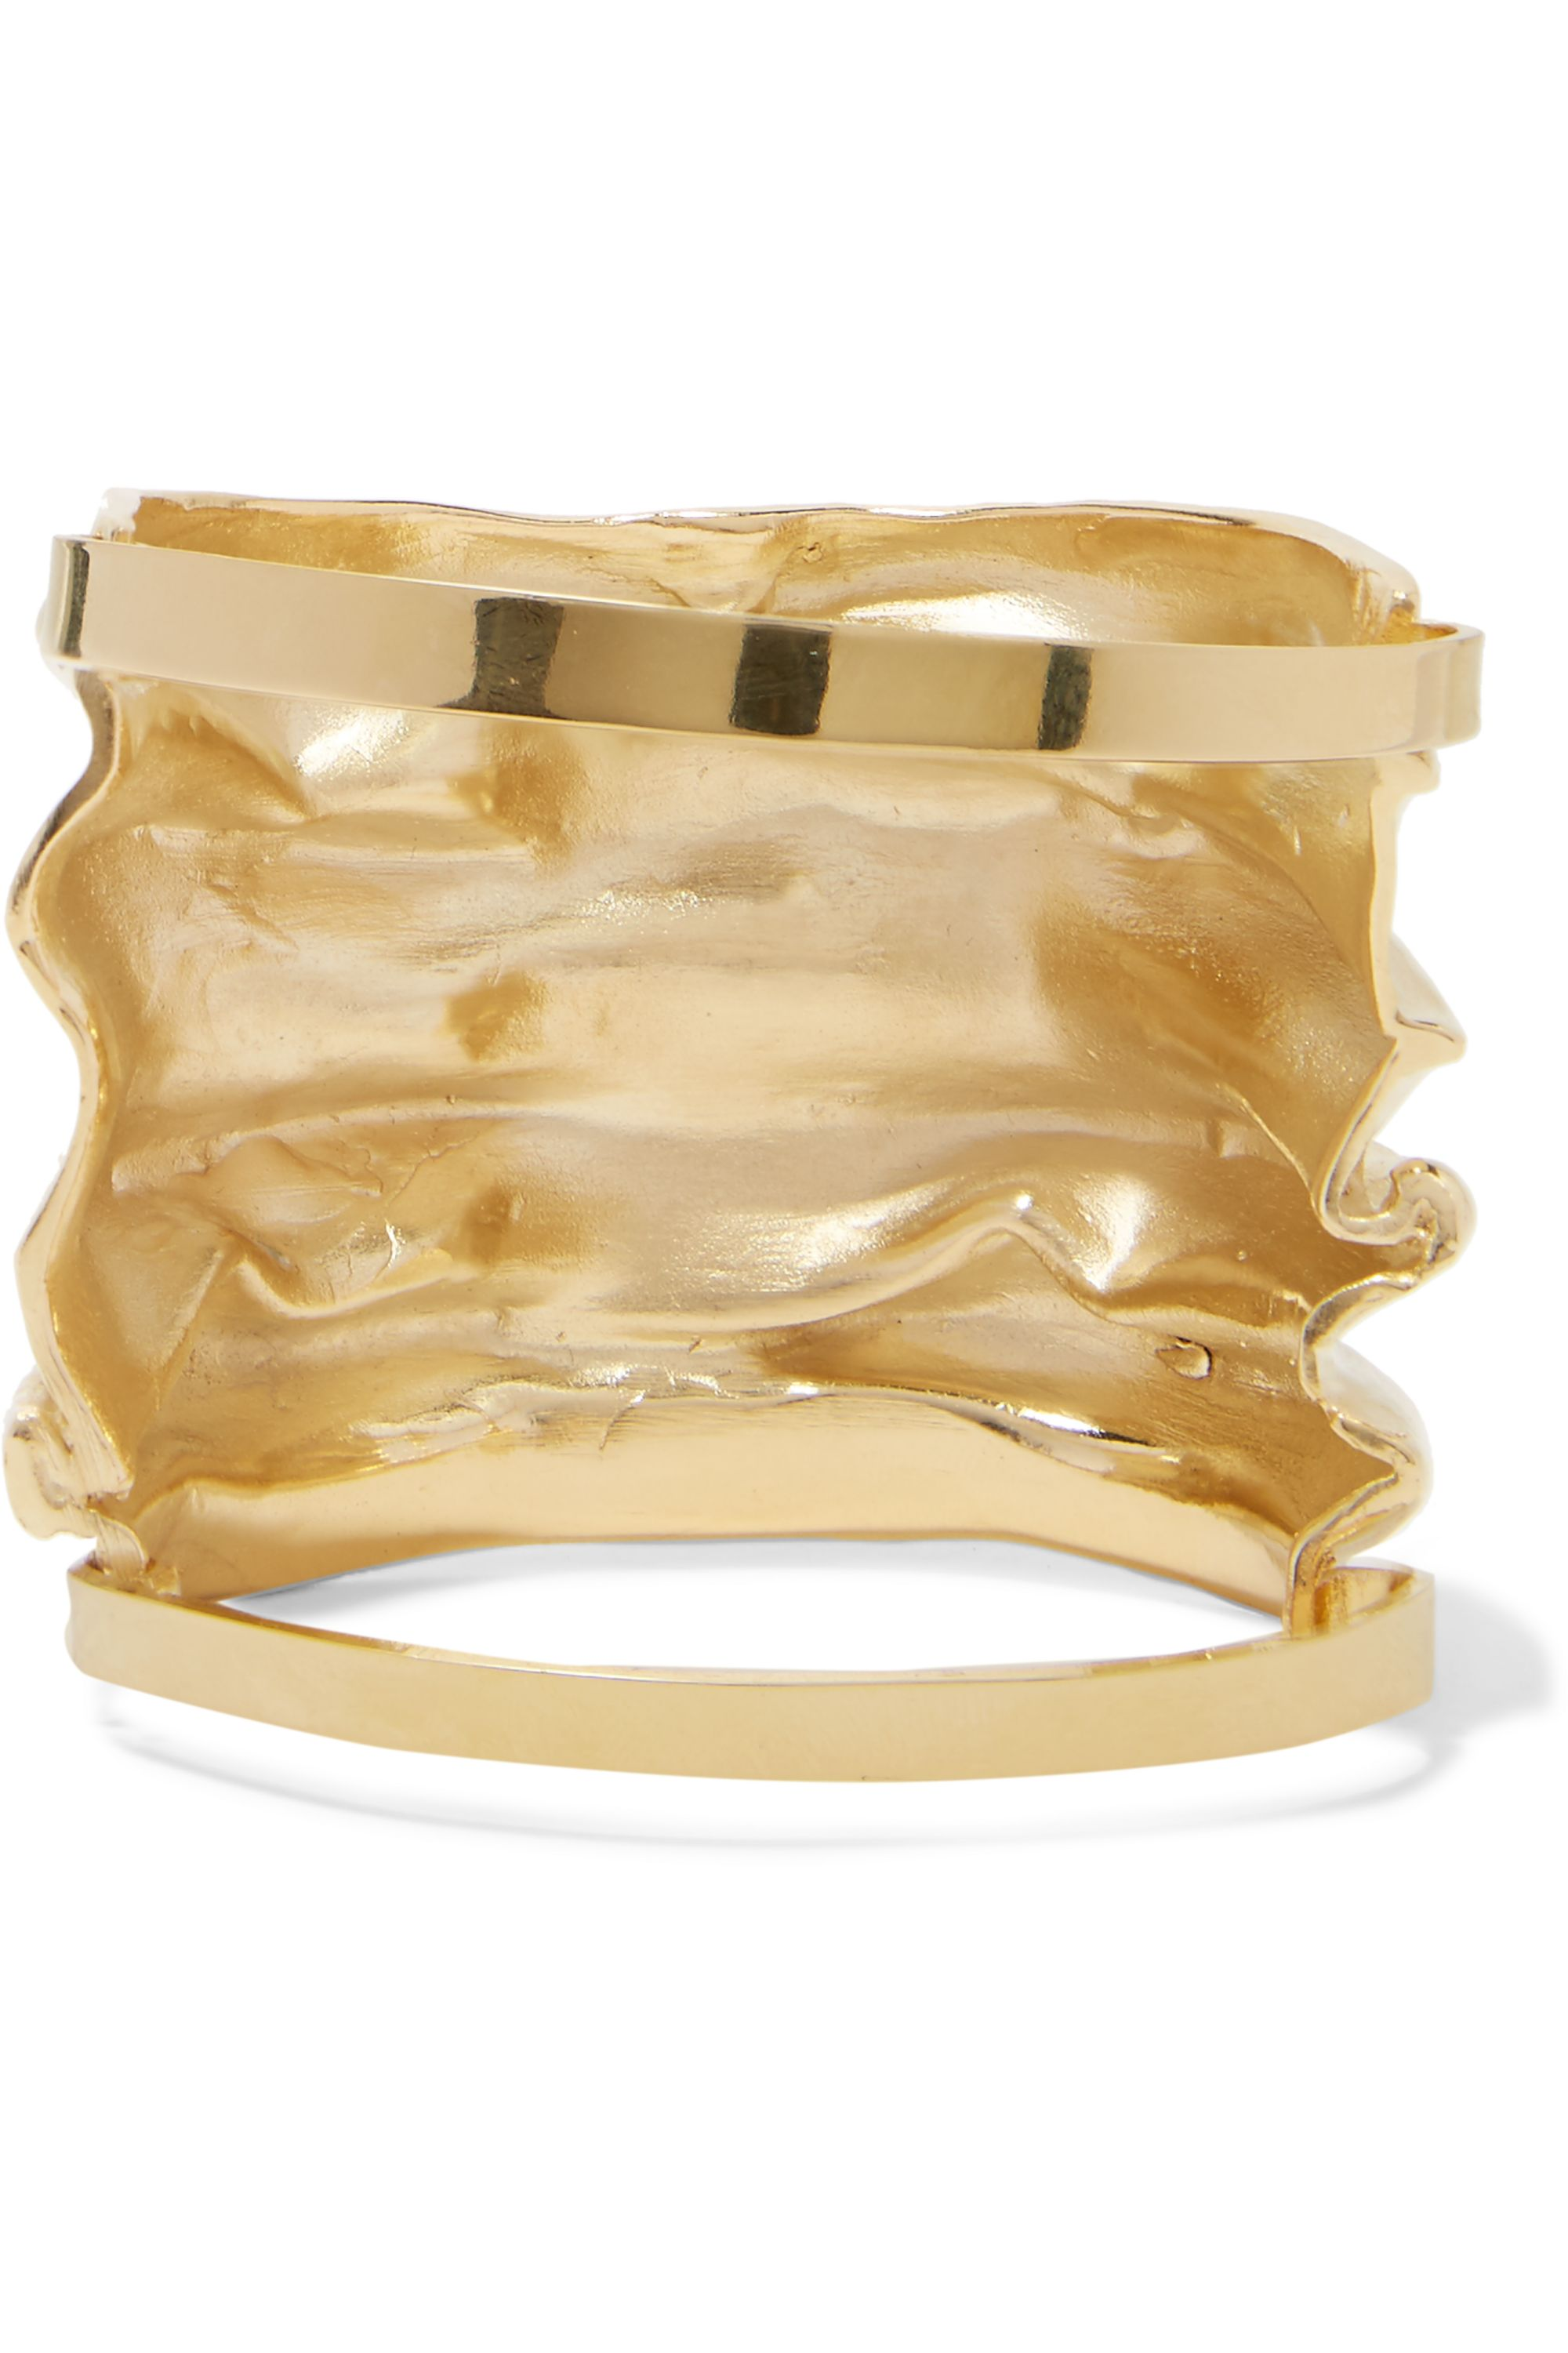 Annelise Michelson Draped gold-plated cuff